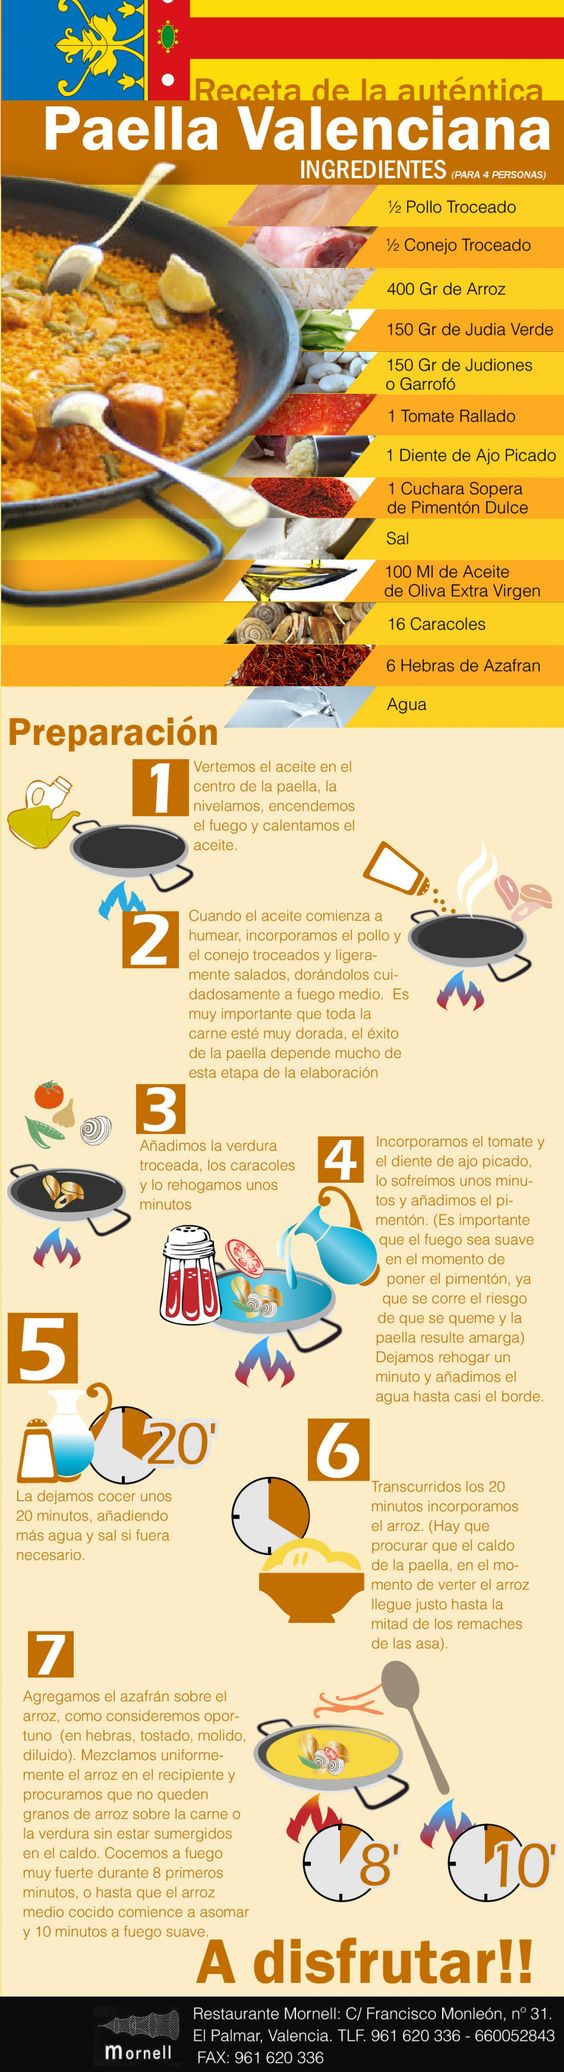 Typical Spanish paella. You can substitute any ingredient or don't use it if you don't like it or don't find it at your local market.